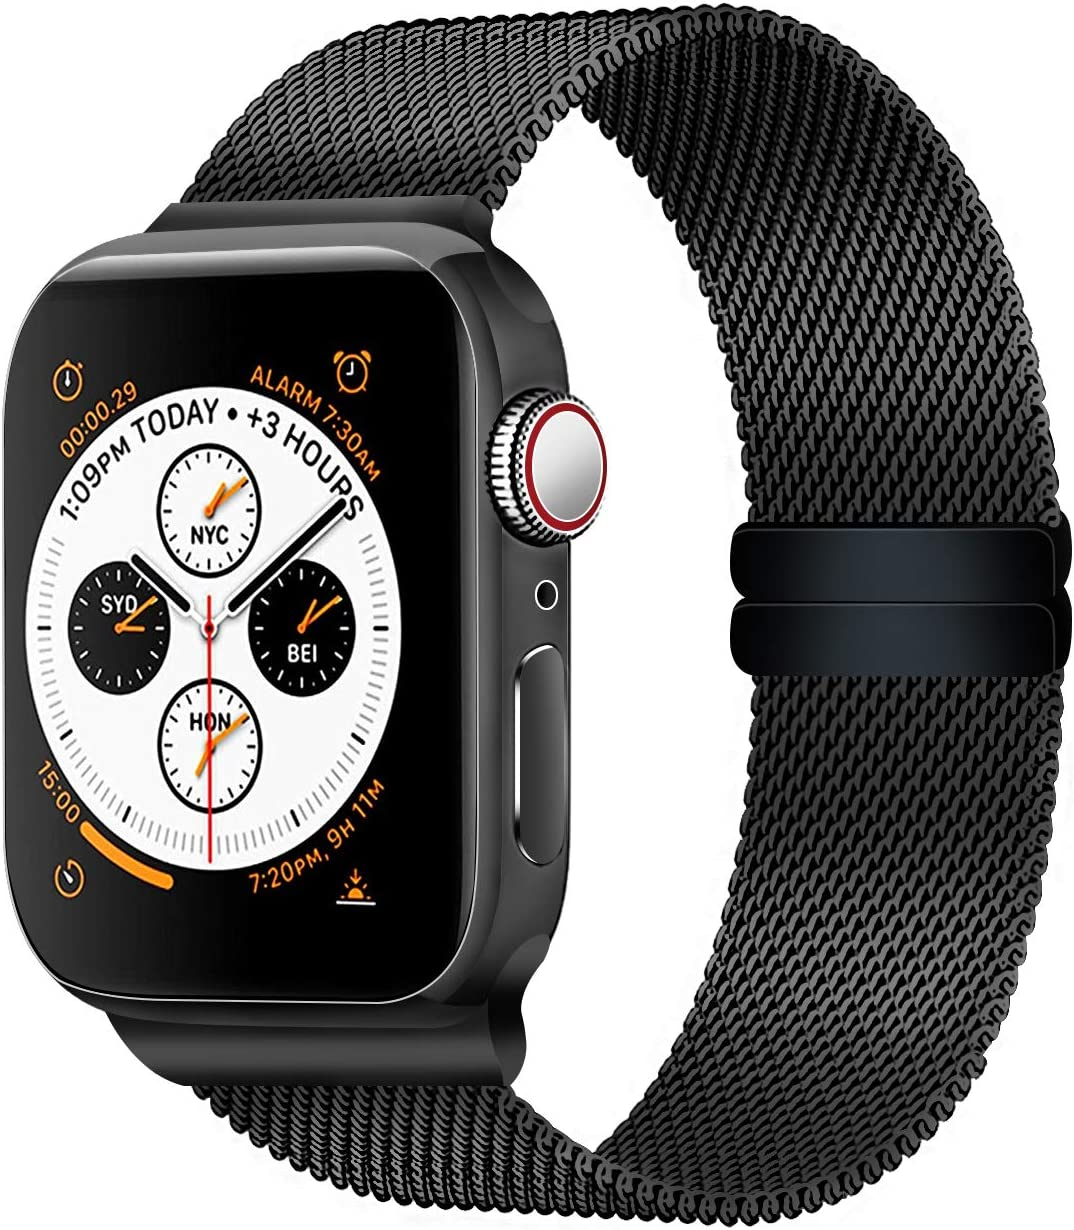 Smart Watch Bands Compatible with Series 5 4 3 2 1, Metal Strap for Apple Watch Band 42mm 44mm, Stainless Steel Mesh Sport Wristbands for Men Women, ...